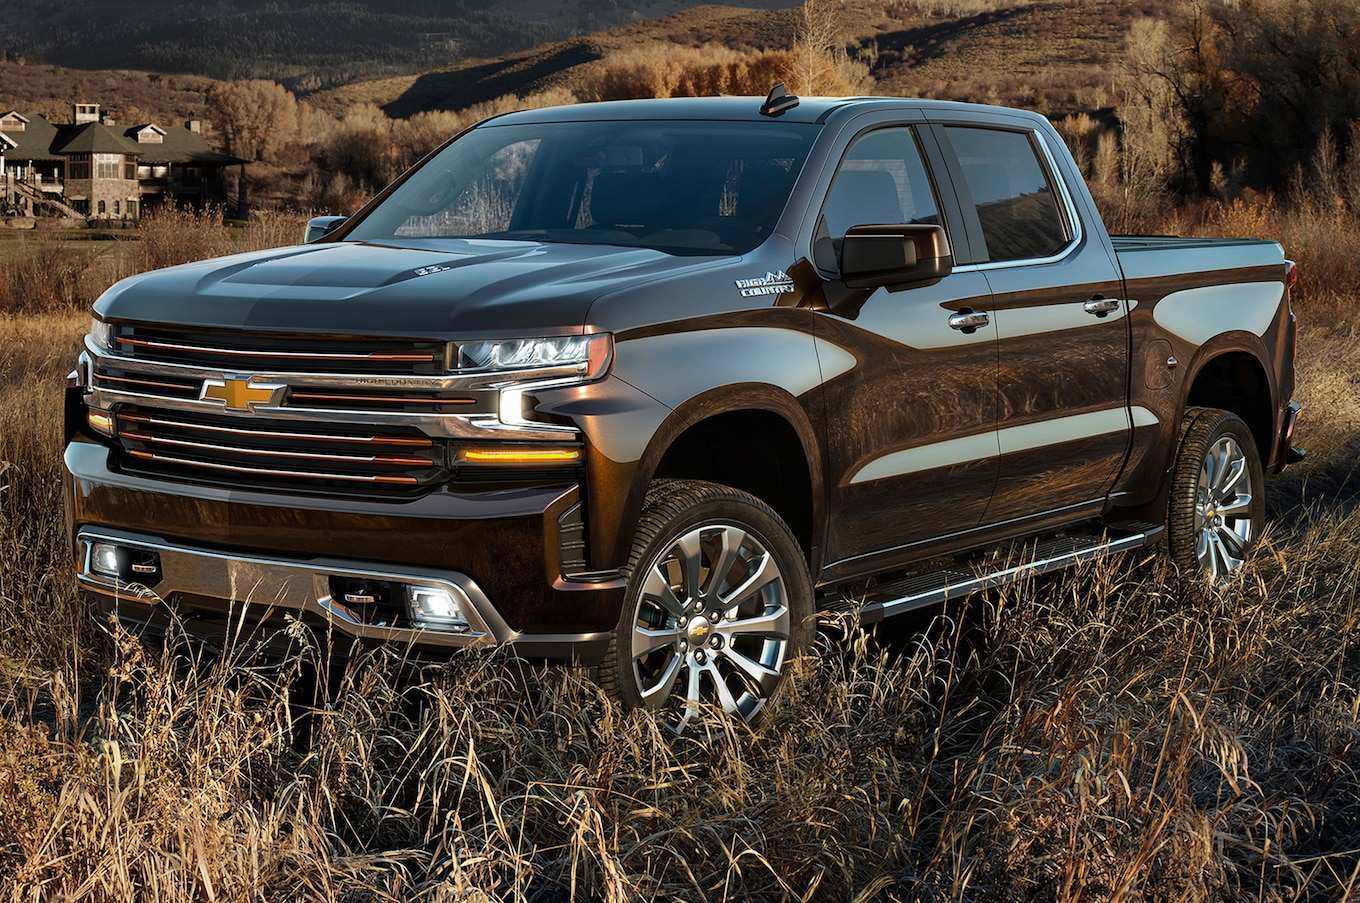 88 Concept of New 2019 Chevrolet Silverado Work Truck Concept Redesign And Review Redesign and Concept for New 2019 Chevrolet Silverado Work Truck Concept Redesign And Review